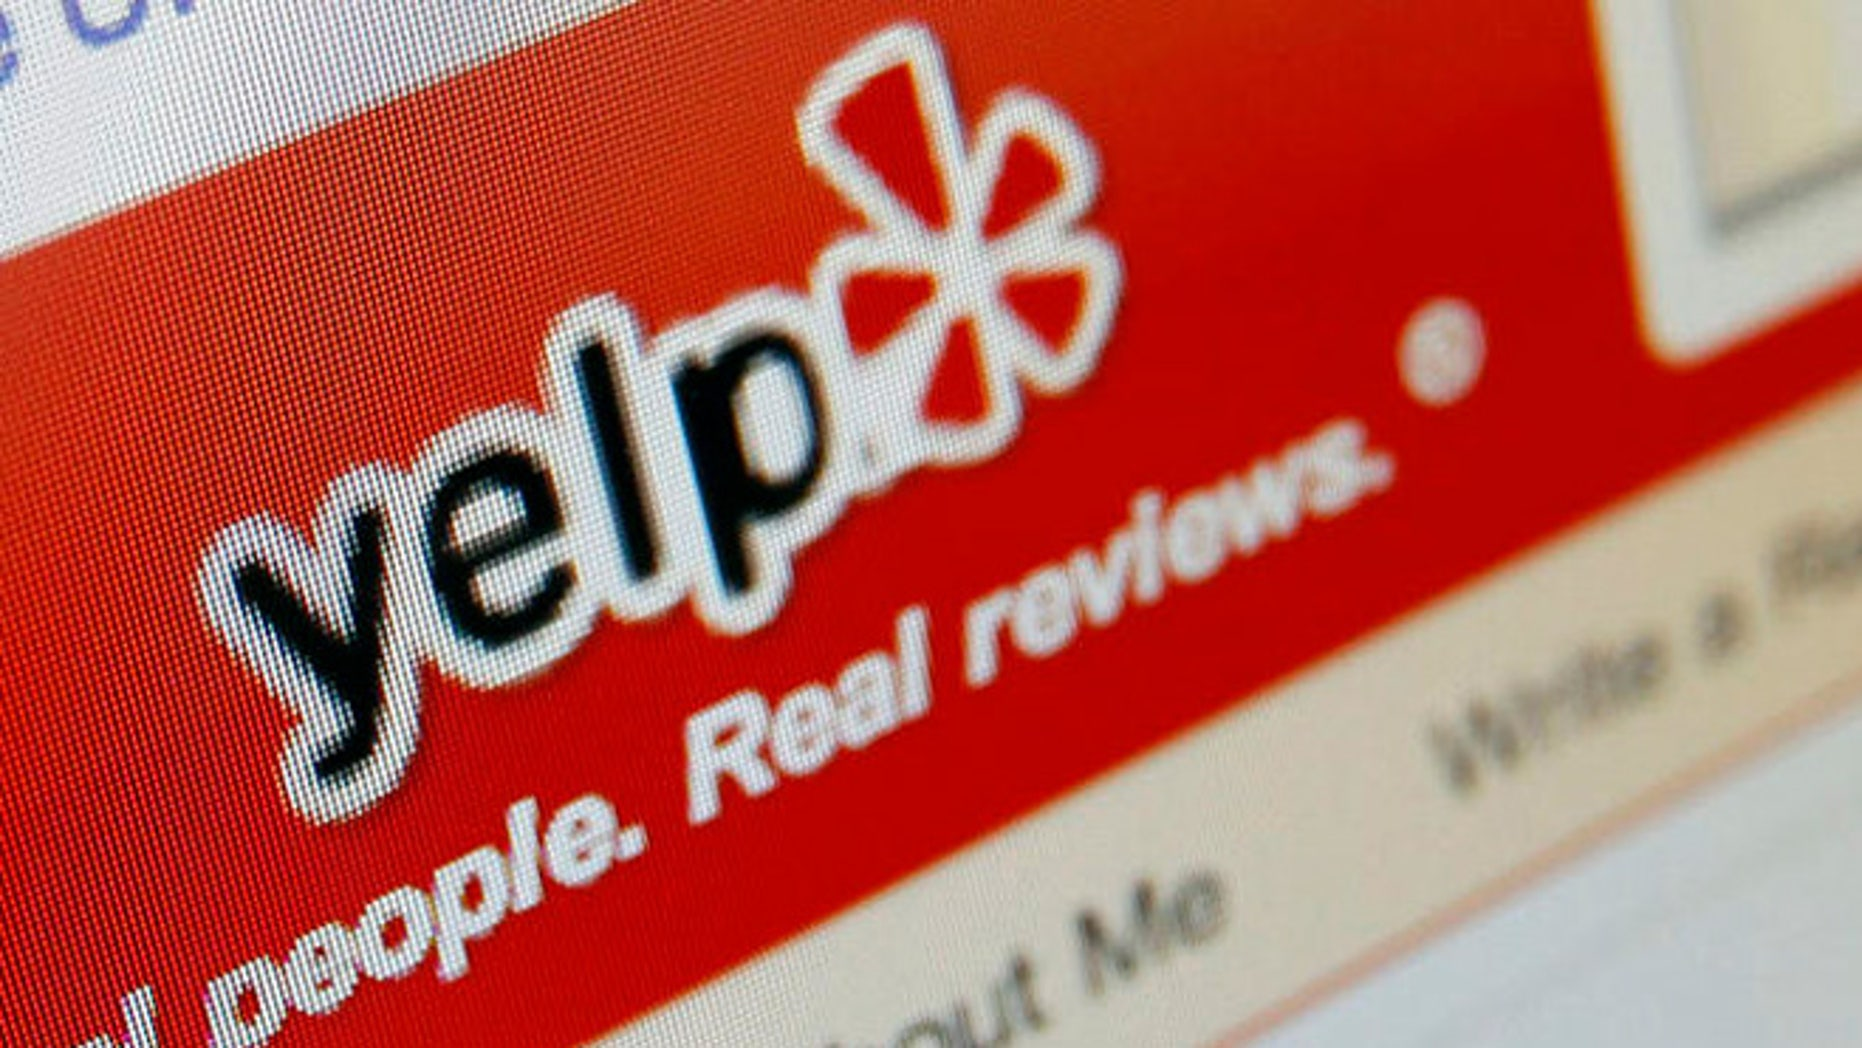 Yelp restaurant reviews help New York City officials  to identify food illnesses they didn't know about: